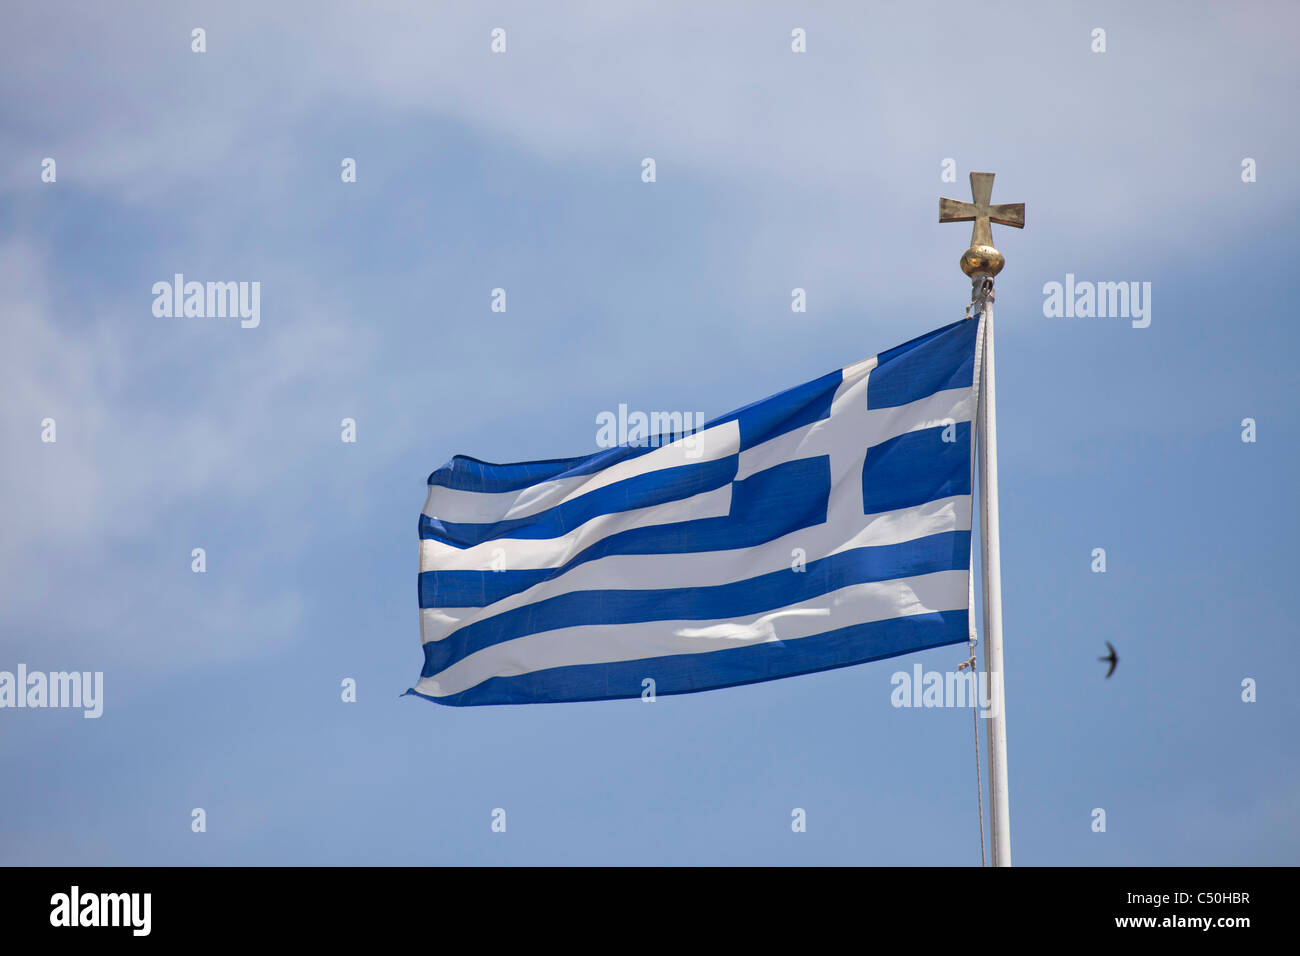 greek flag in the coastal port city Volos in Thessaly on the Greek mainland, Greece - Stock Image